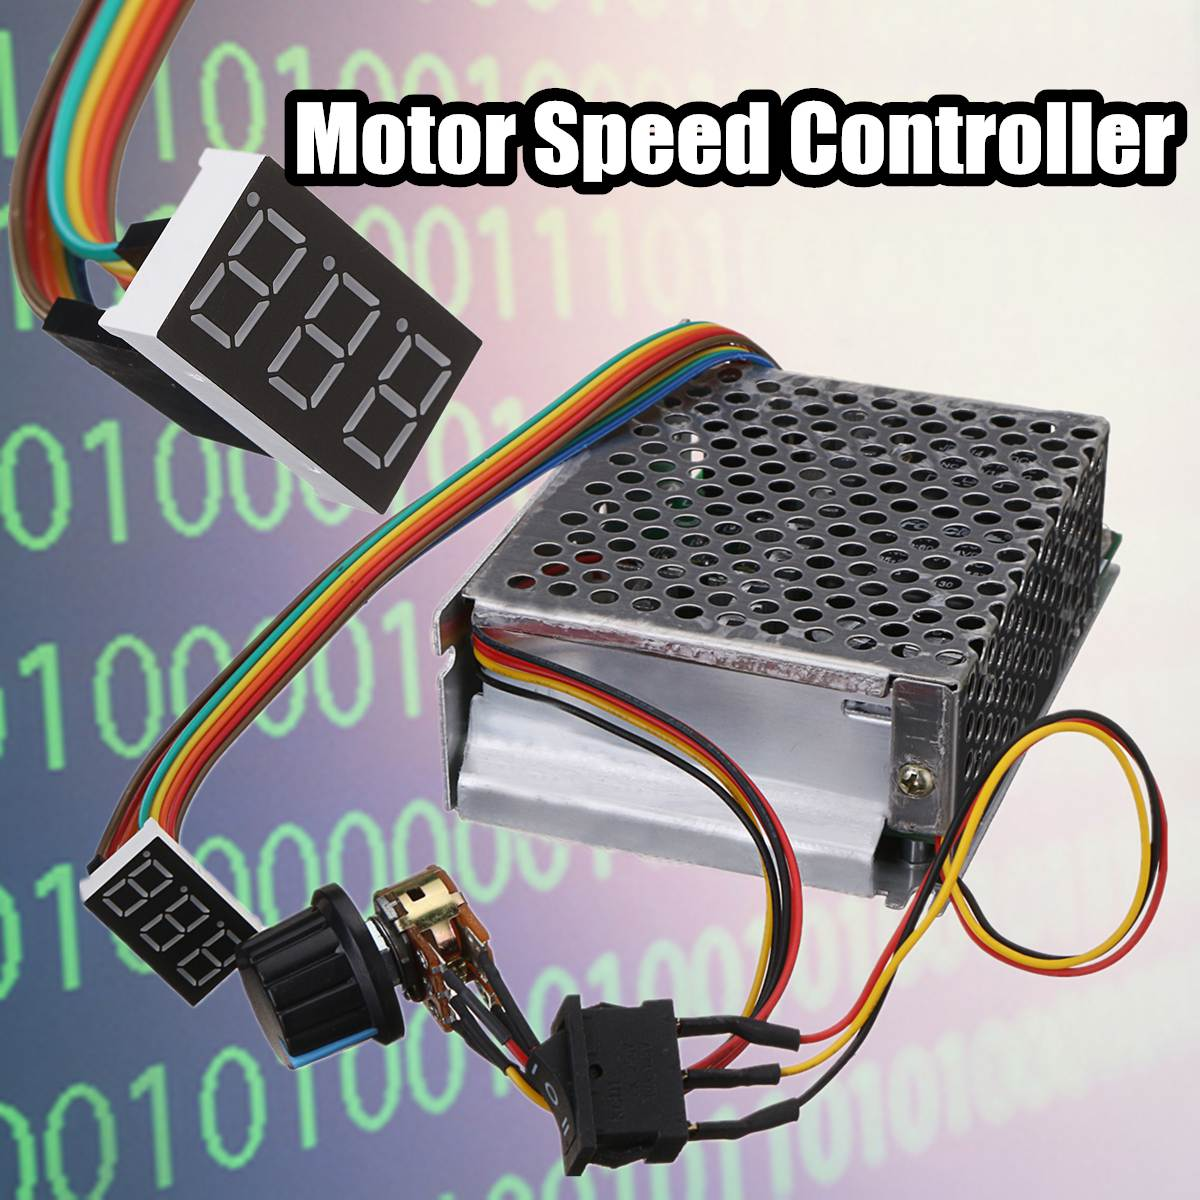 1Pcs DC10-50V 60A 3000W Reversible DC Motor Speed Controller PWM Control 12V 24V 36V 48V Reversible Switch Digital Display 20a universal dc10 60v pwm hho rc motor speed regulator controller switch l057 new hot